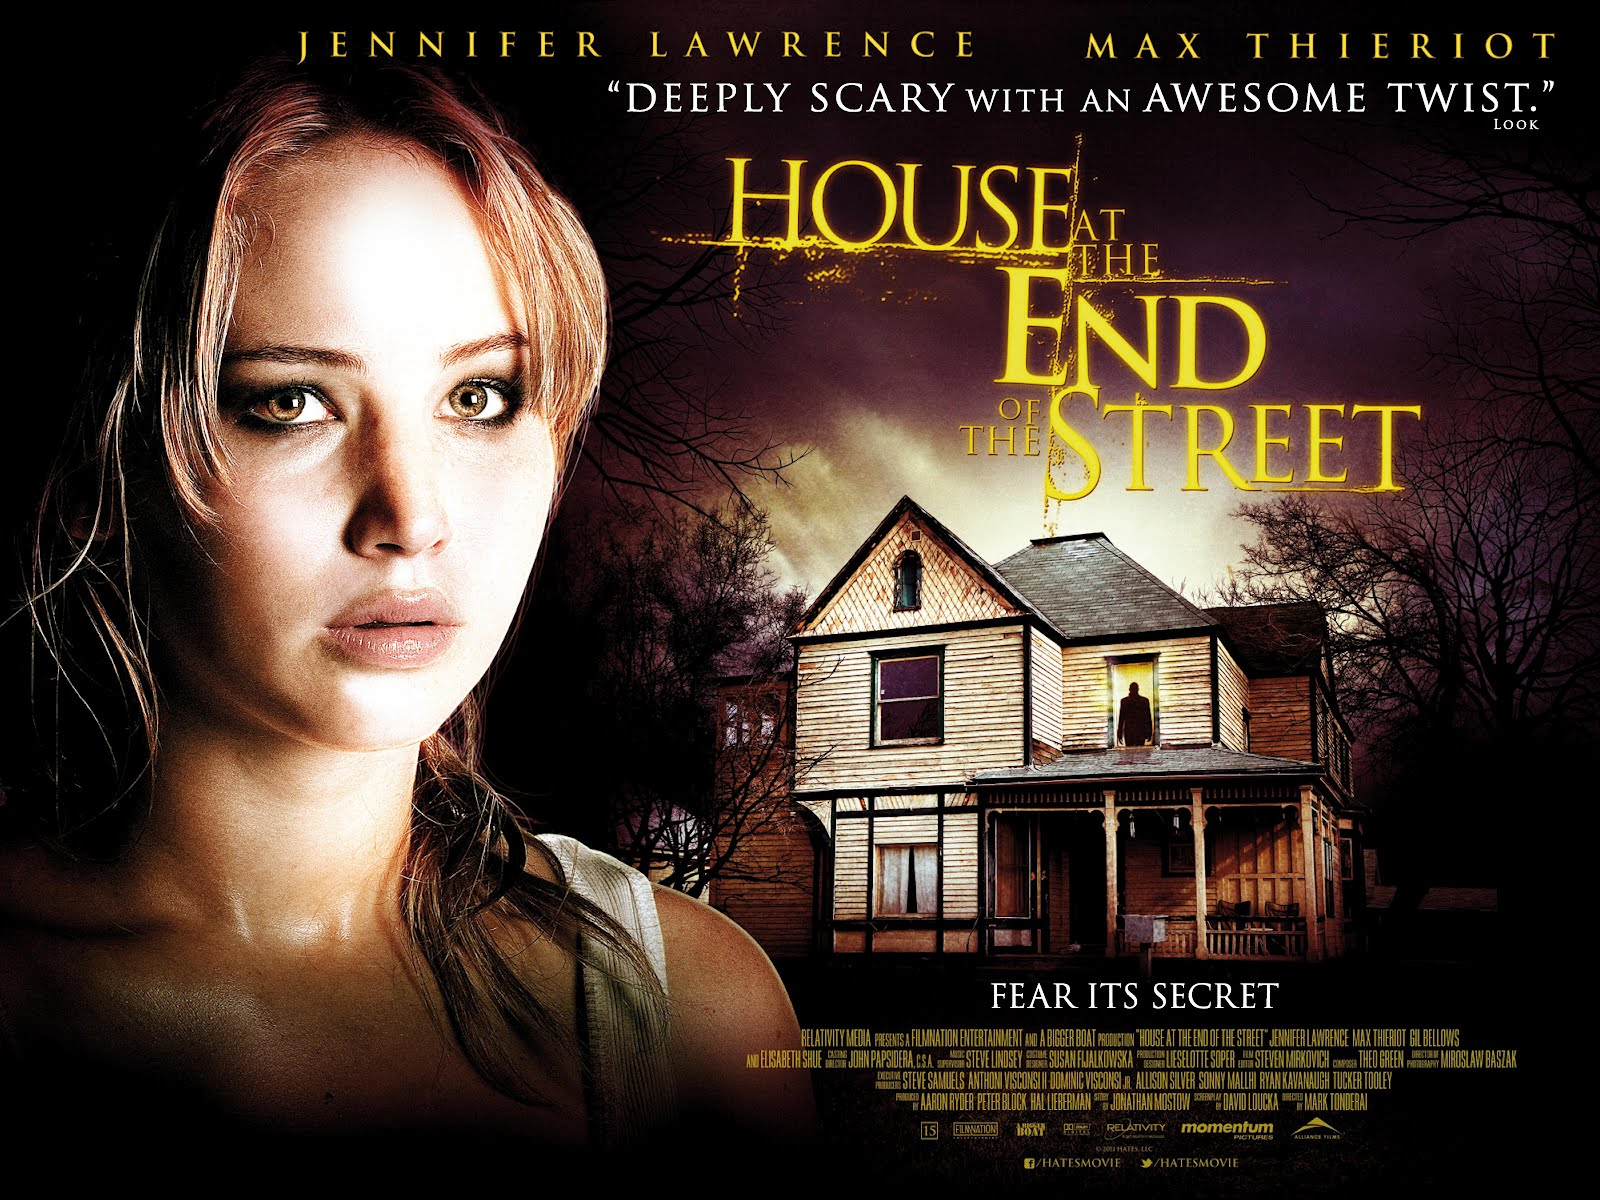 House at the end of the street Film Clip : Teaser Trailer